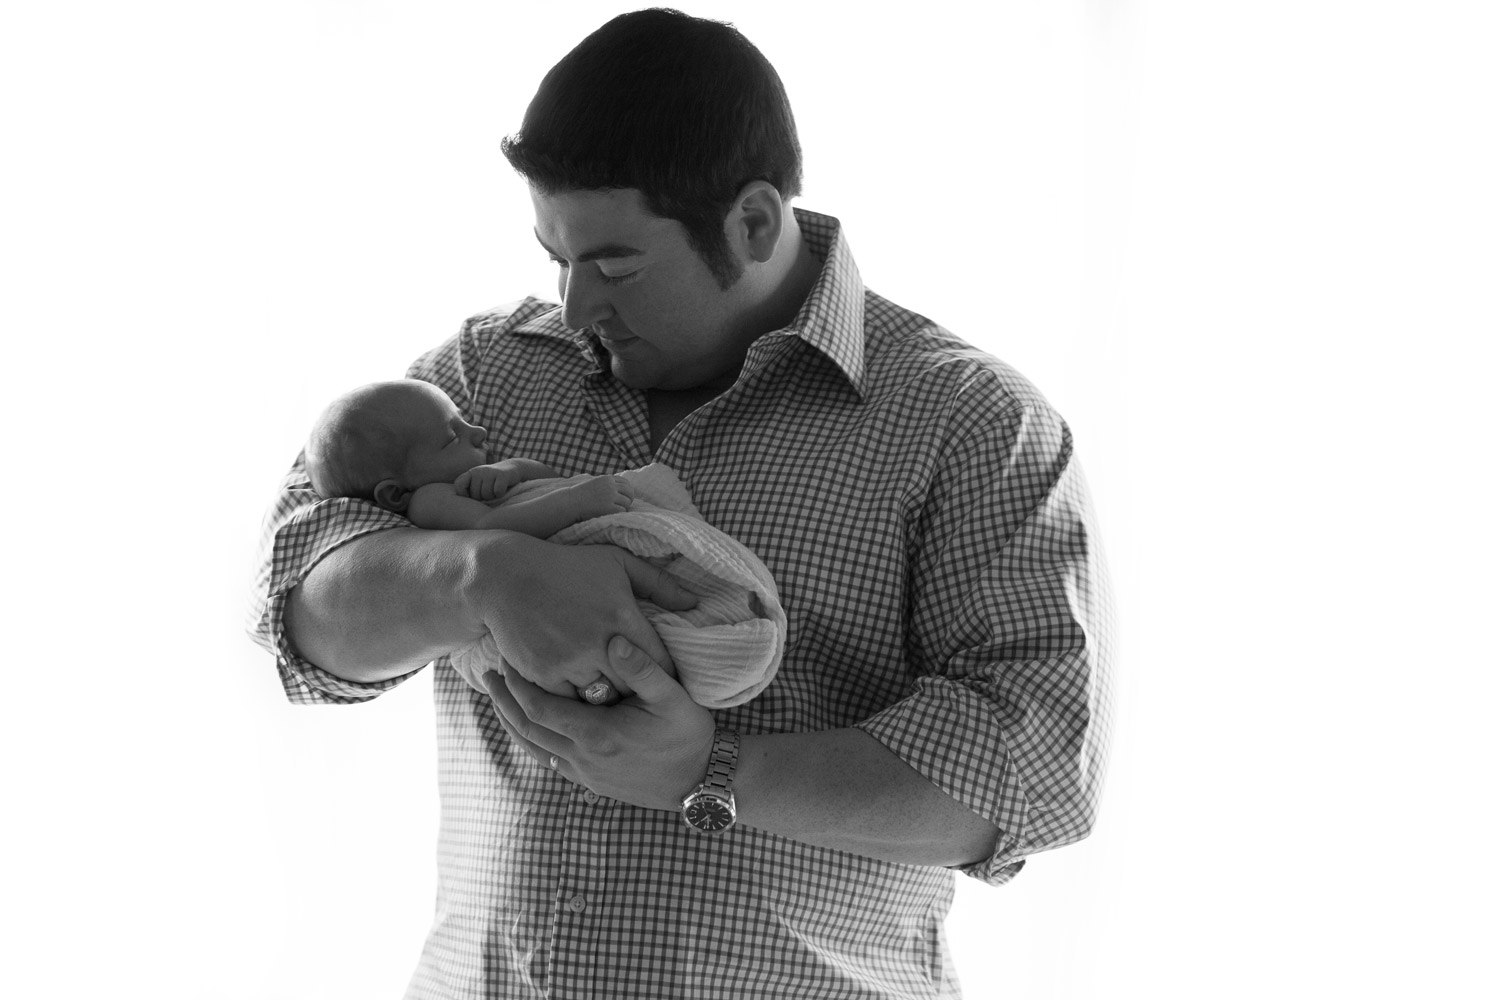 father_holding_newborn_black_and_white.jpg